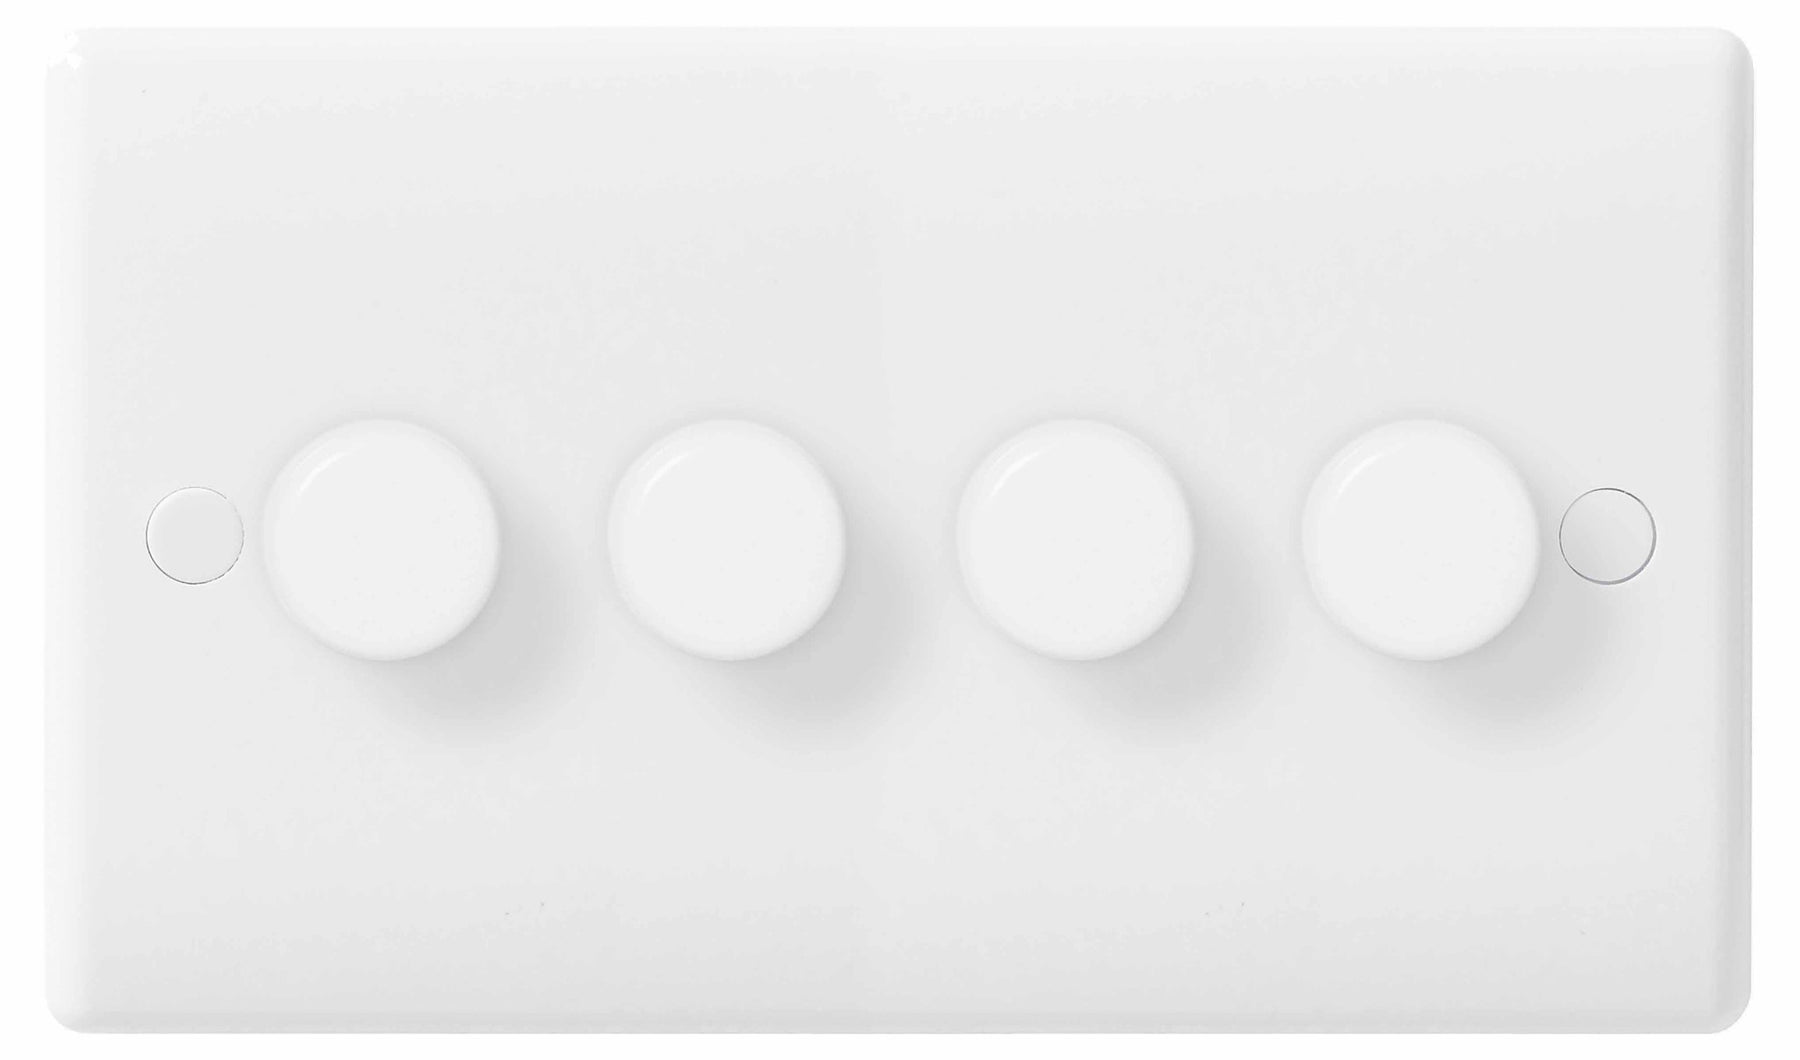 BG Nexus 884P 400W White 4 Gang 2 Way Push Dimmer Switch